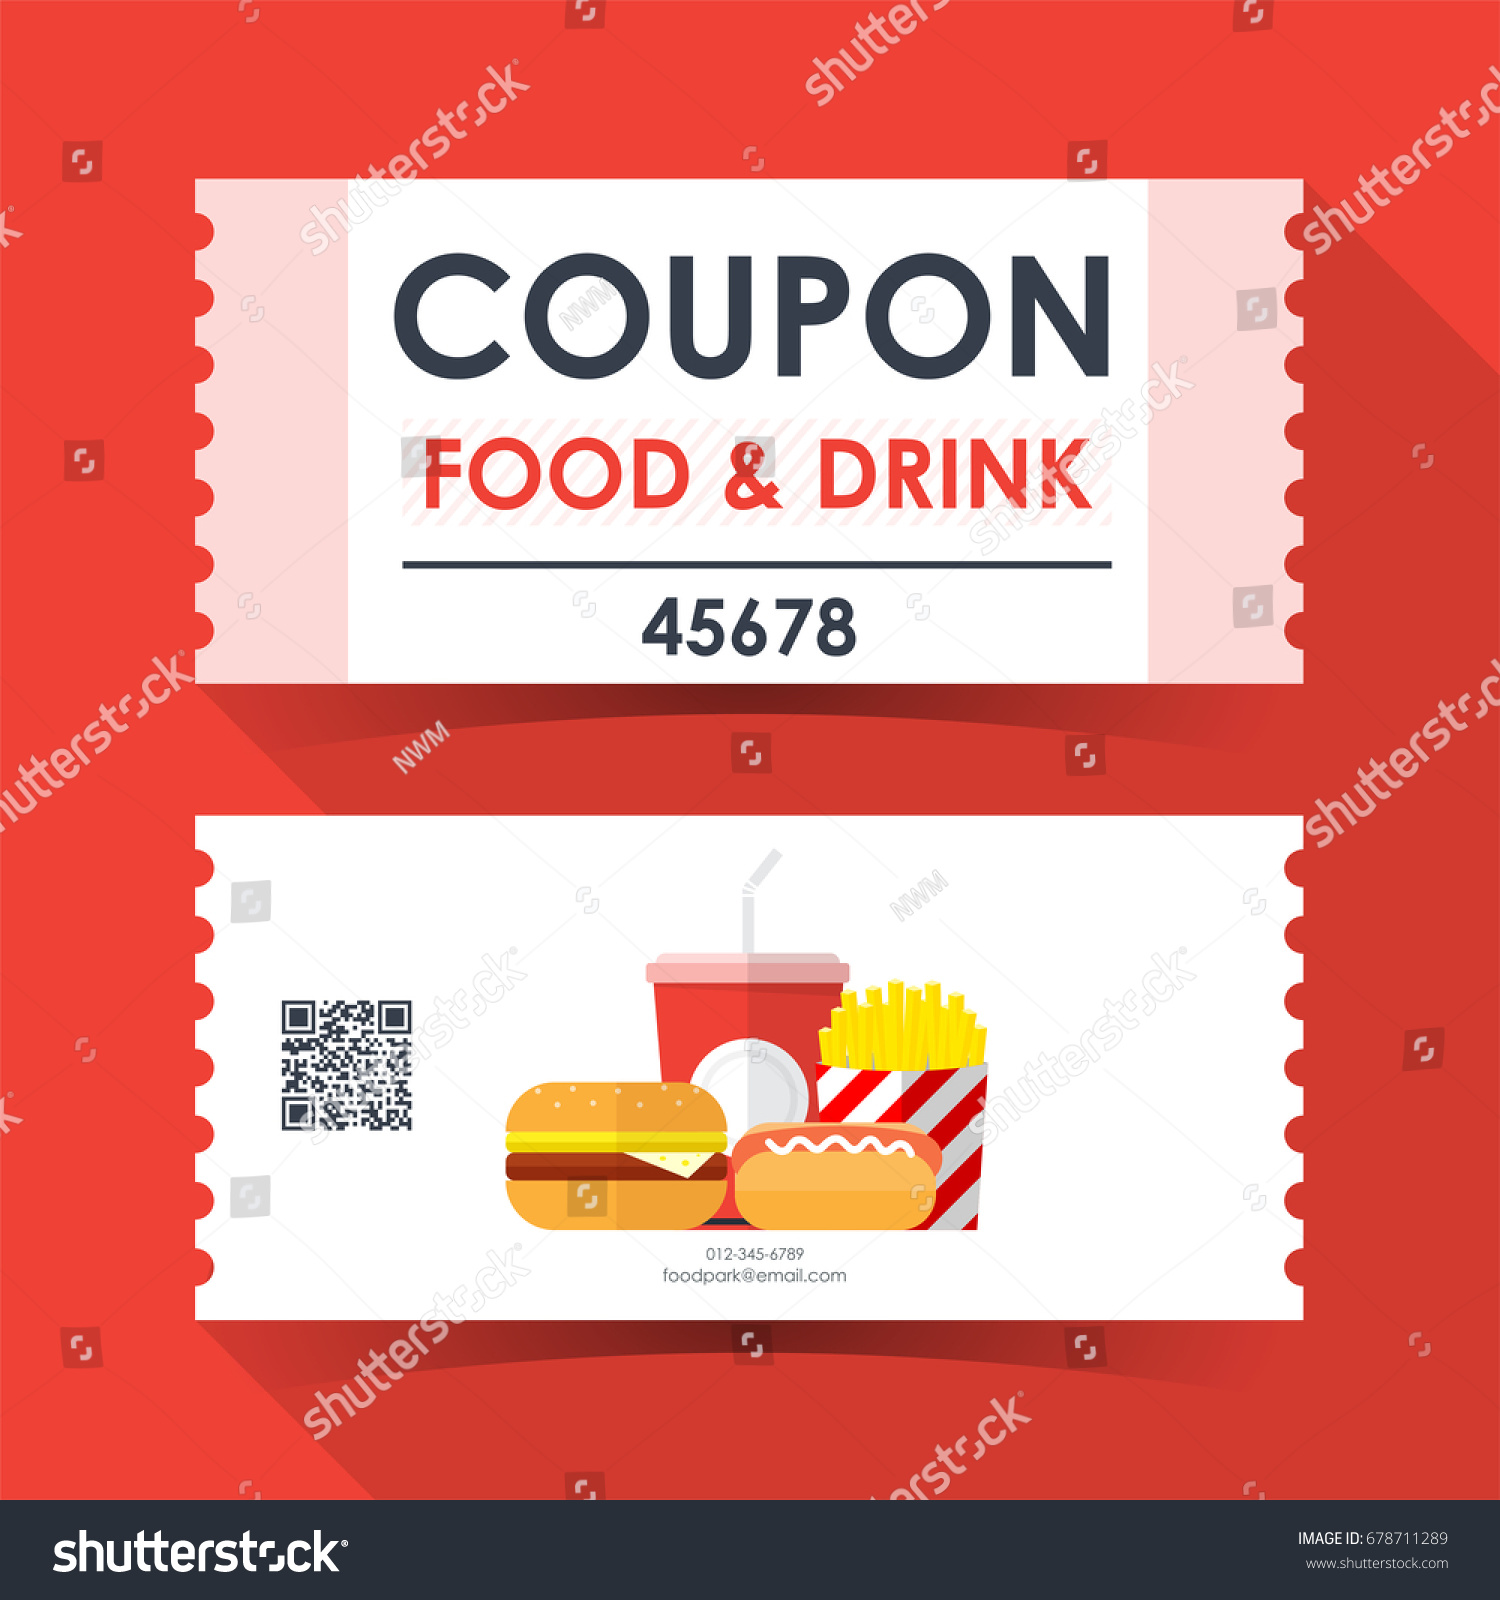 Food Ticket Template clinical nurse consultant cover ...